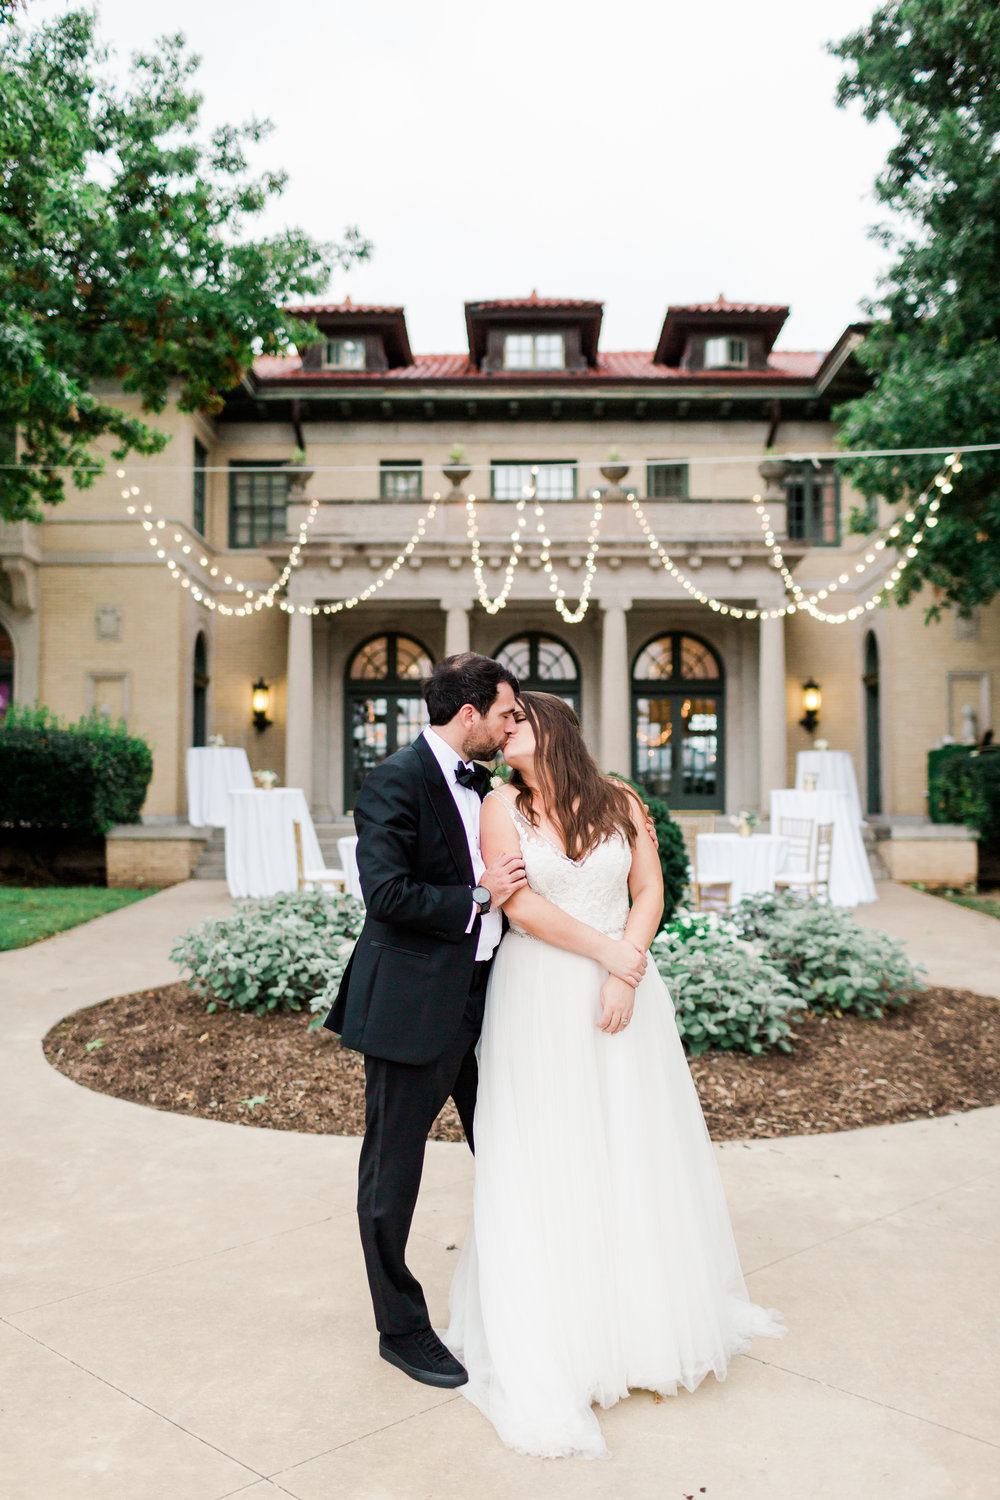 The Mansion at Woodward Park Tulsa Oklahoma Wedding_Valorie Darling Photography-6627-2.jpg